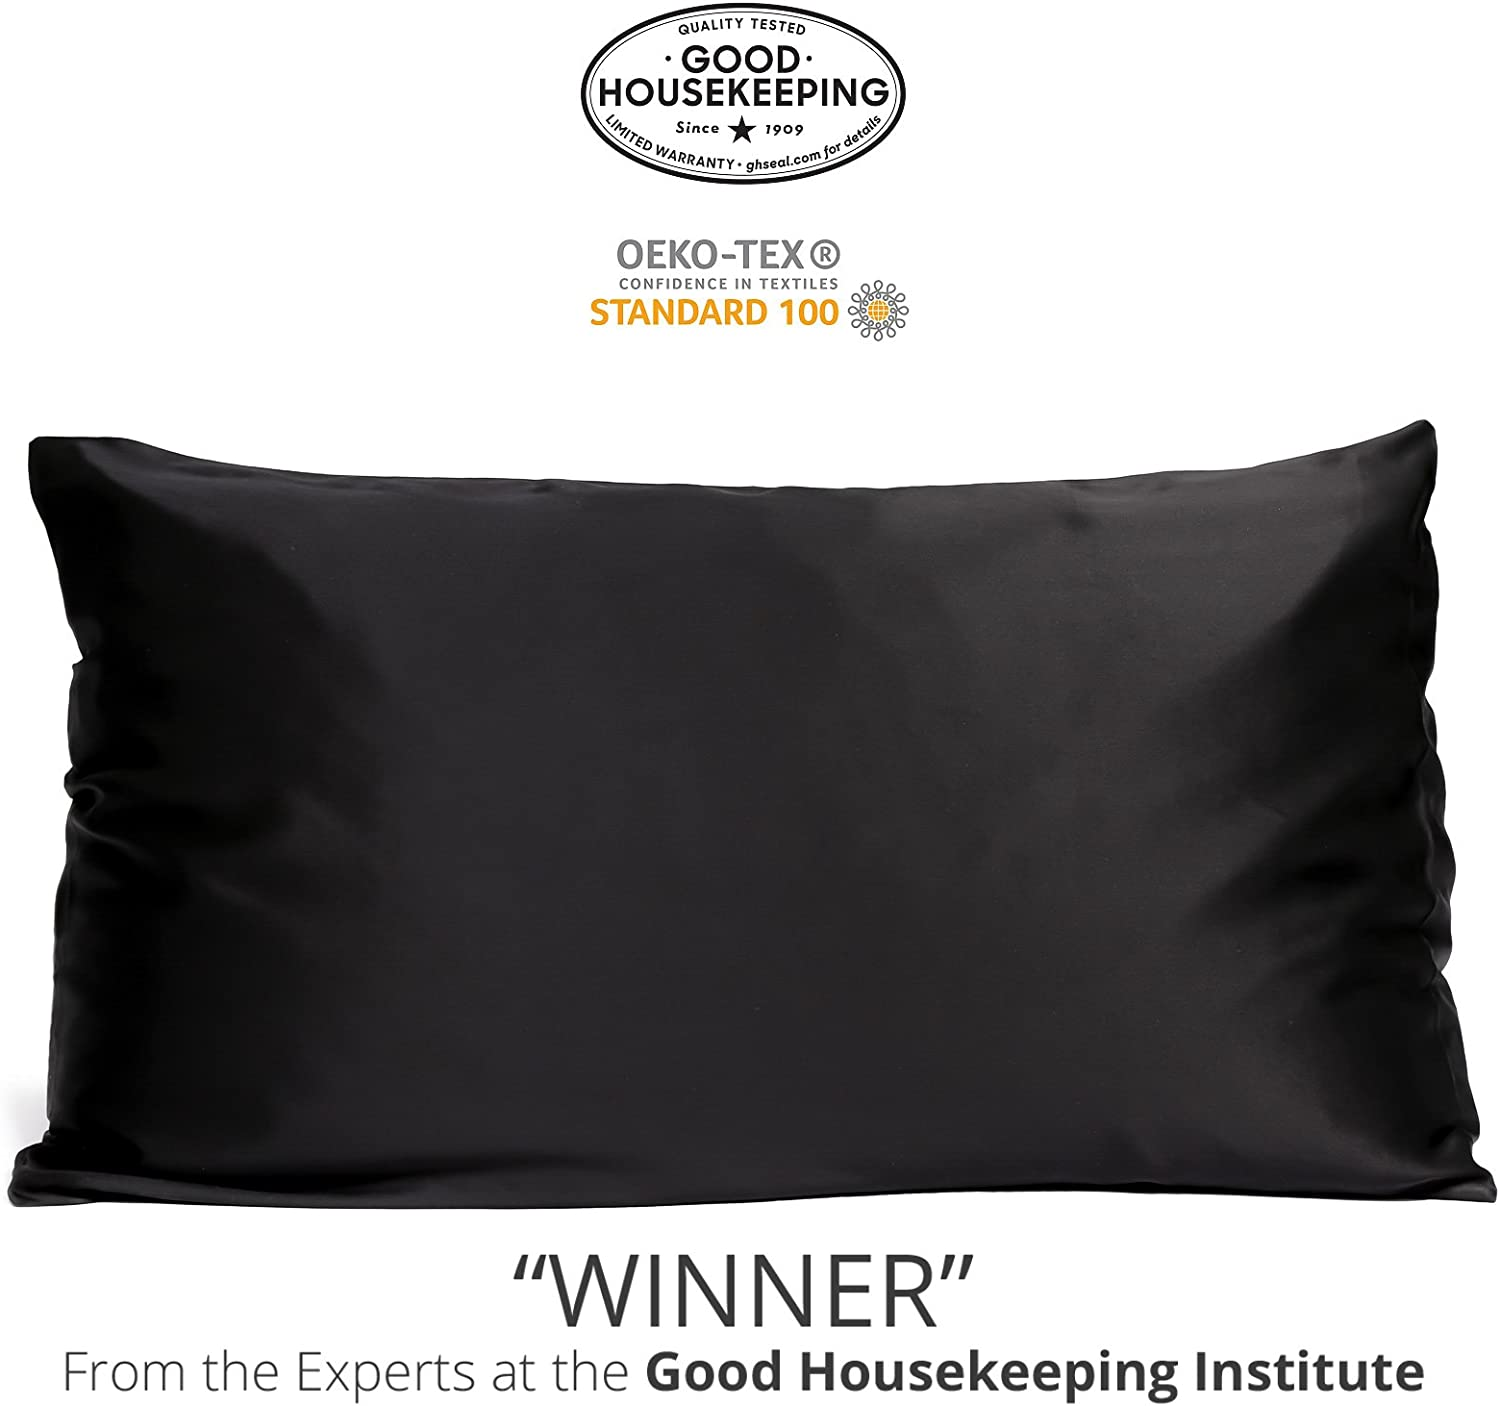 Fishers Finery 25mm 100% Pure Mulberry Silk Pillowcase Good Housekeeping Winner (Black, Queen)